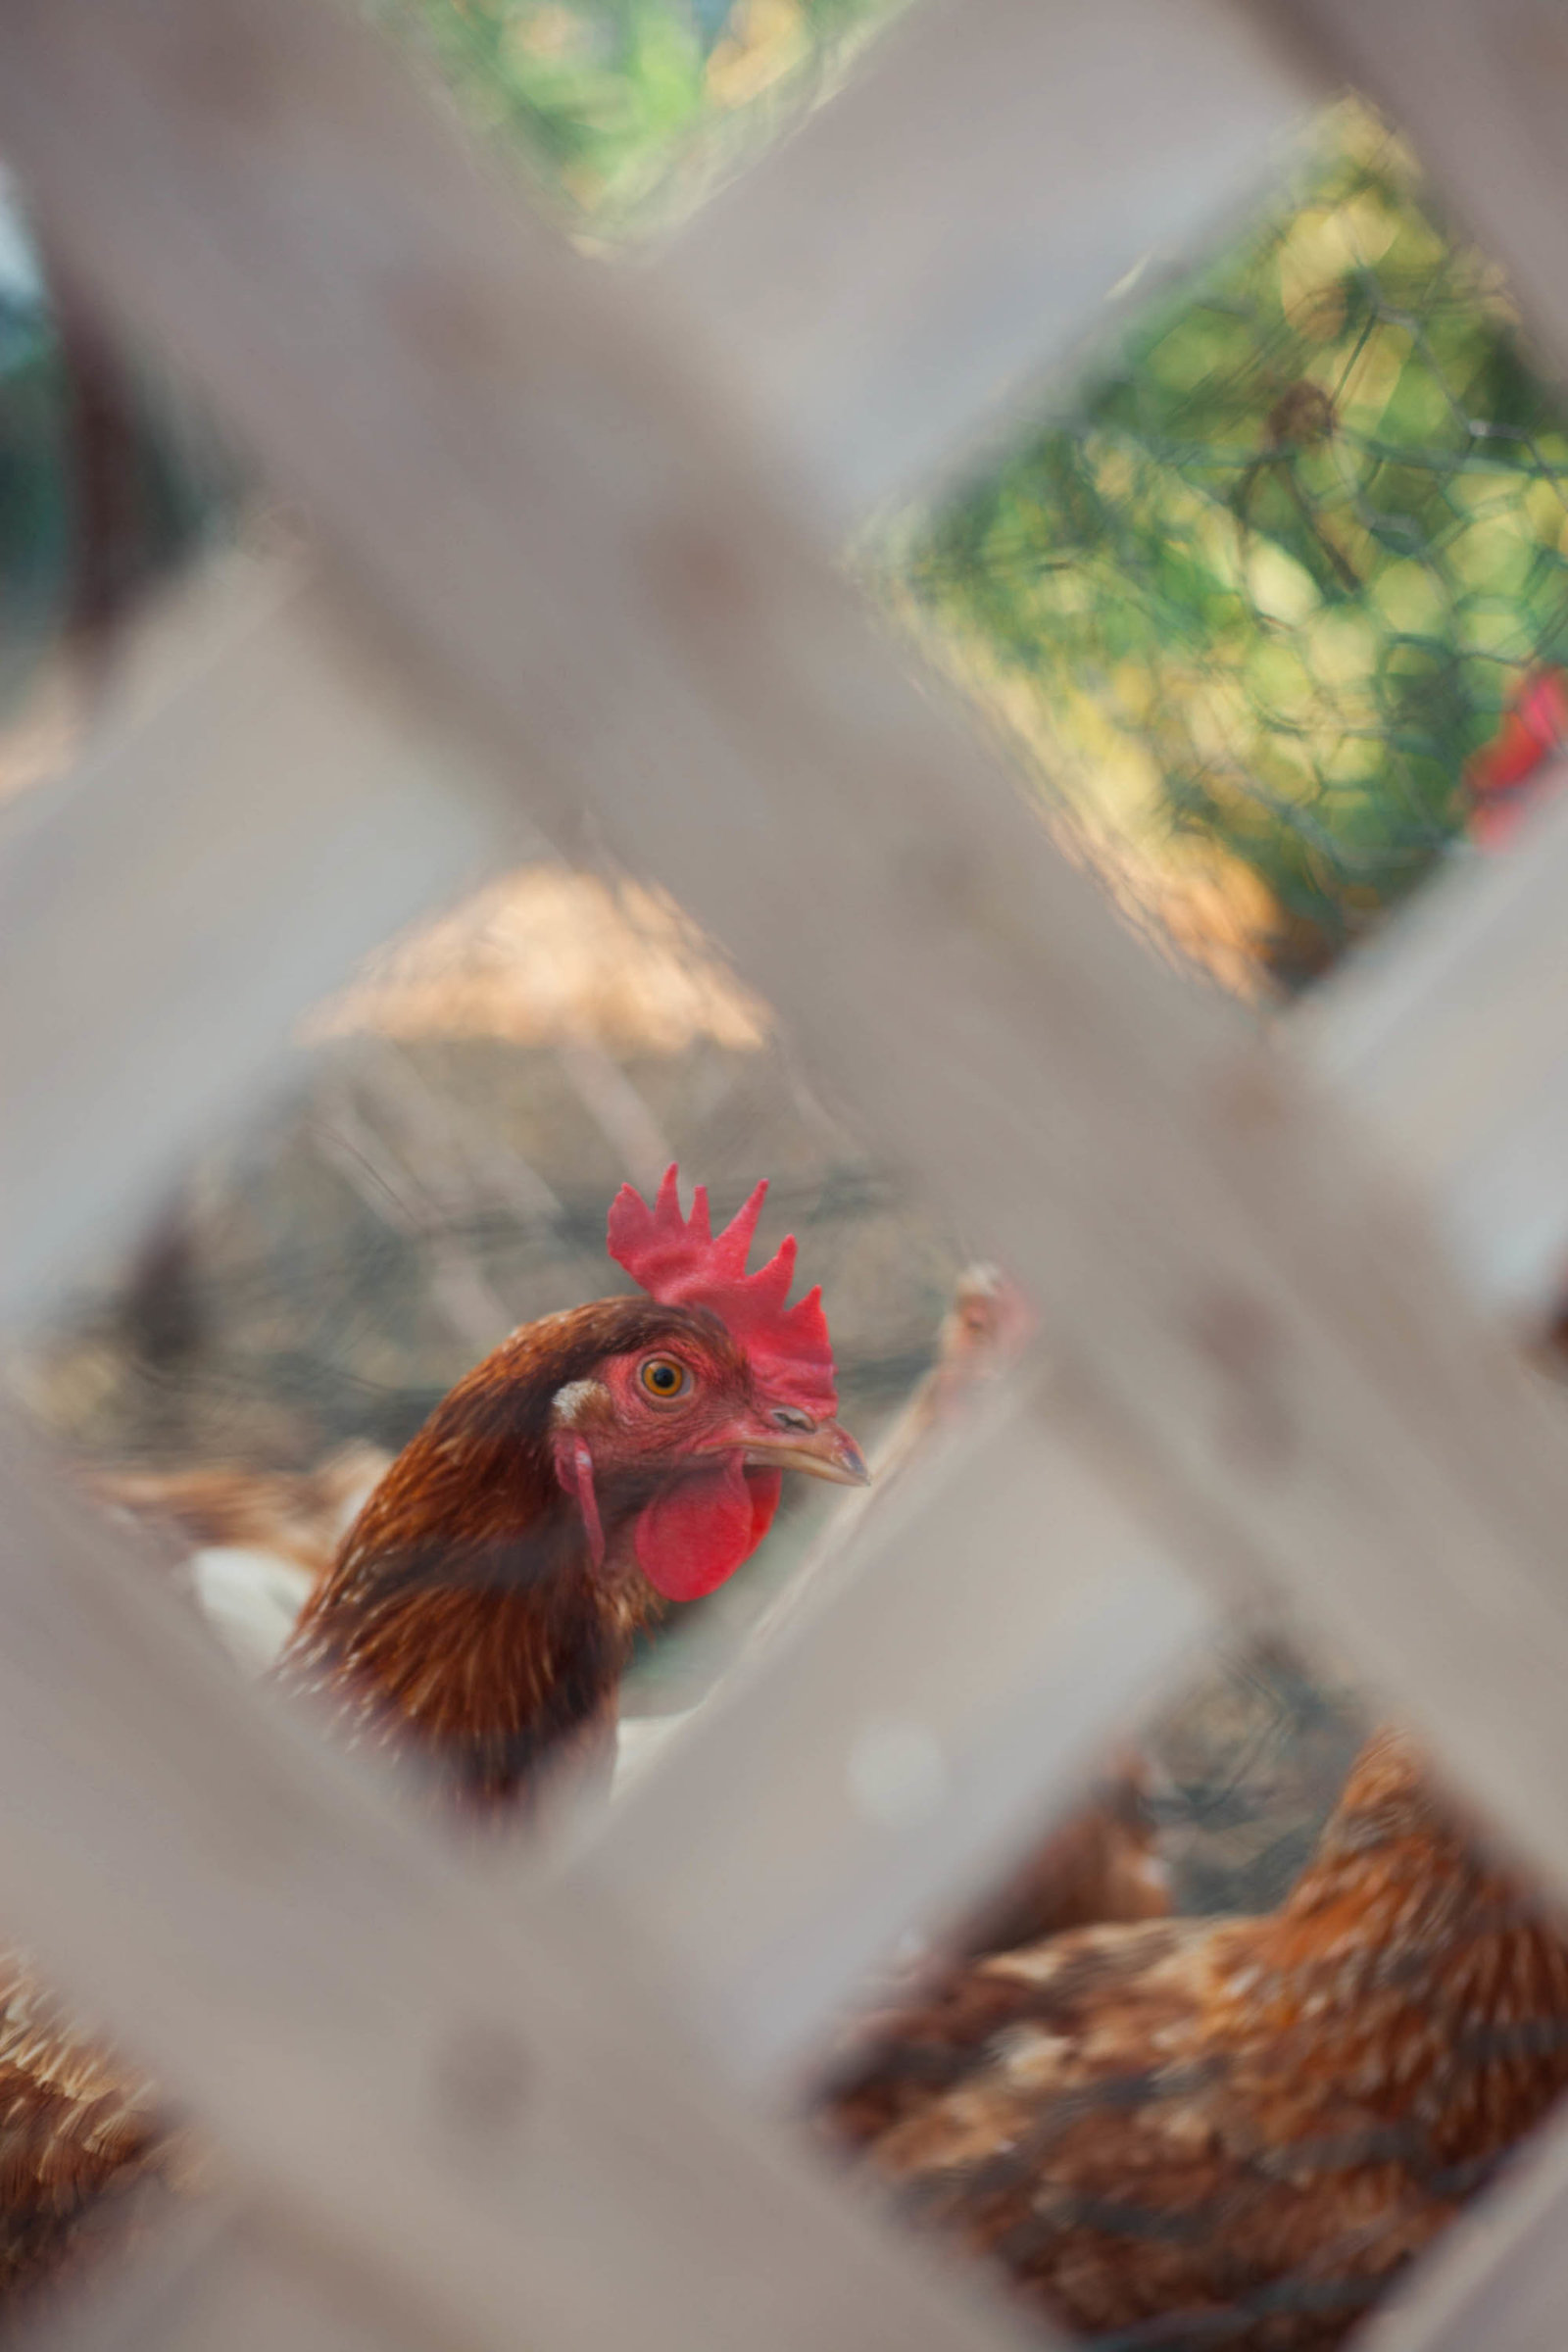 chicken-wisconsin-farm-country-nature-kate-timbers-photography-2202